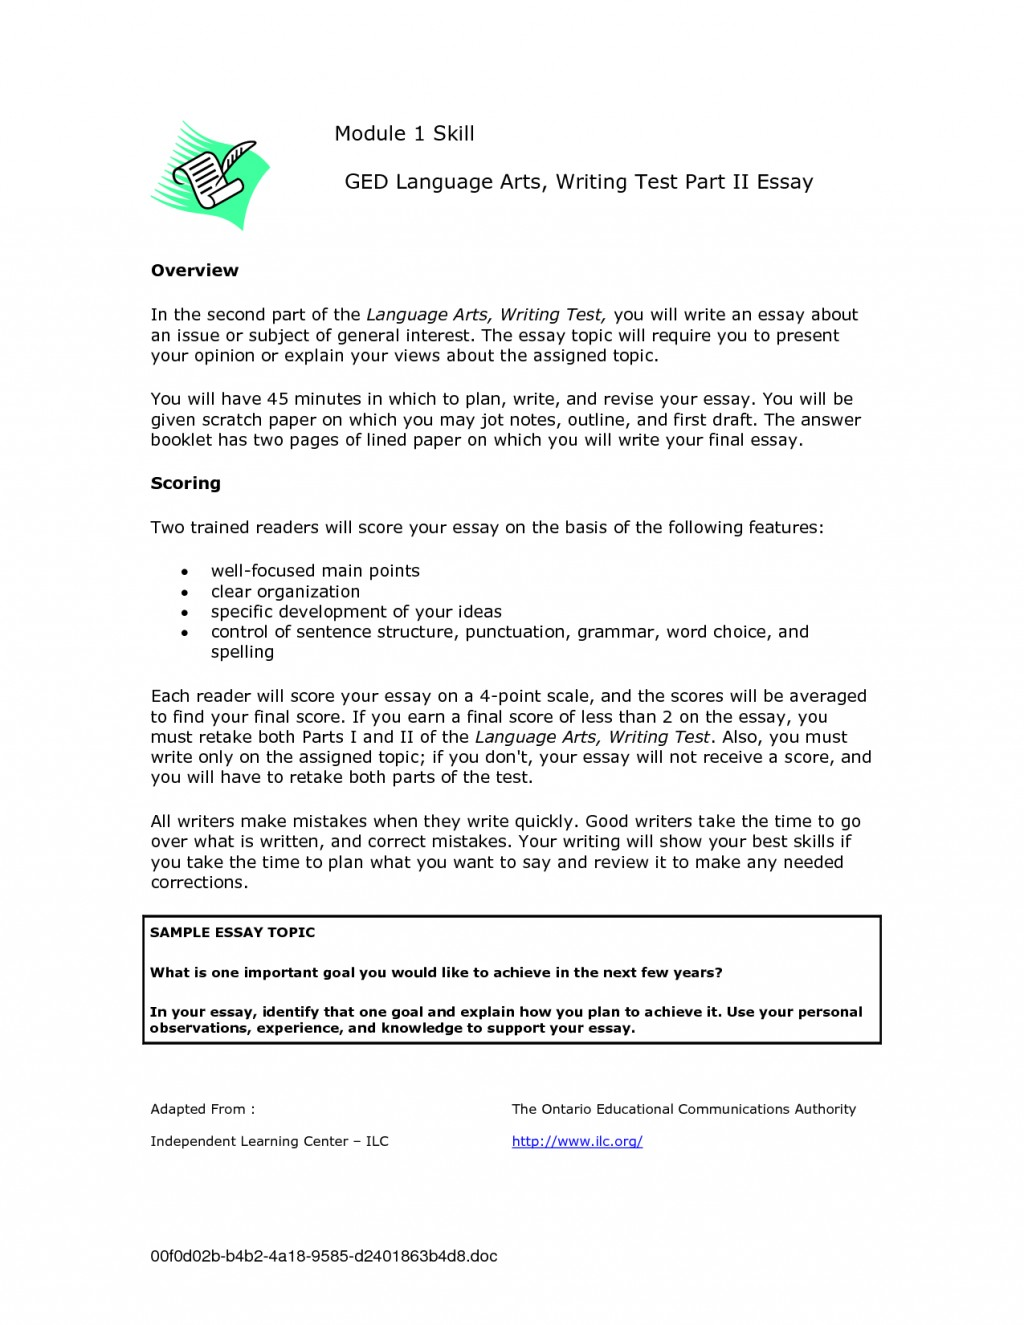 005 Ged Essay Topics Writing Test Samples 109105 Stirring List Examples Pdf Large